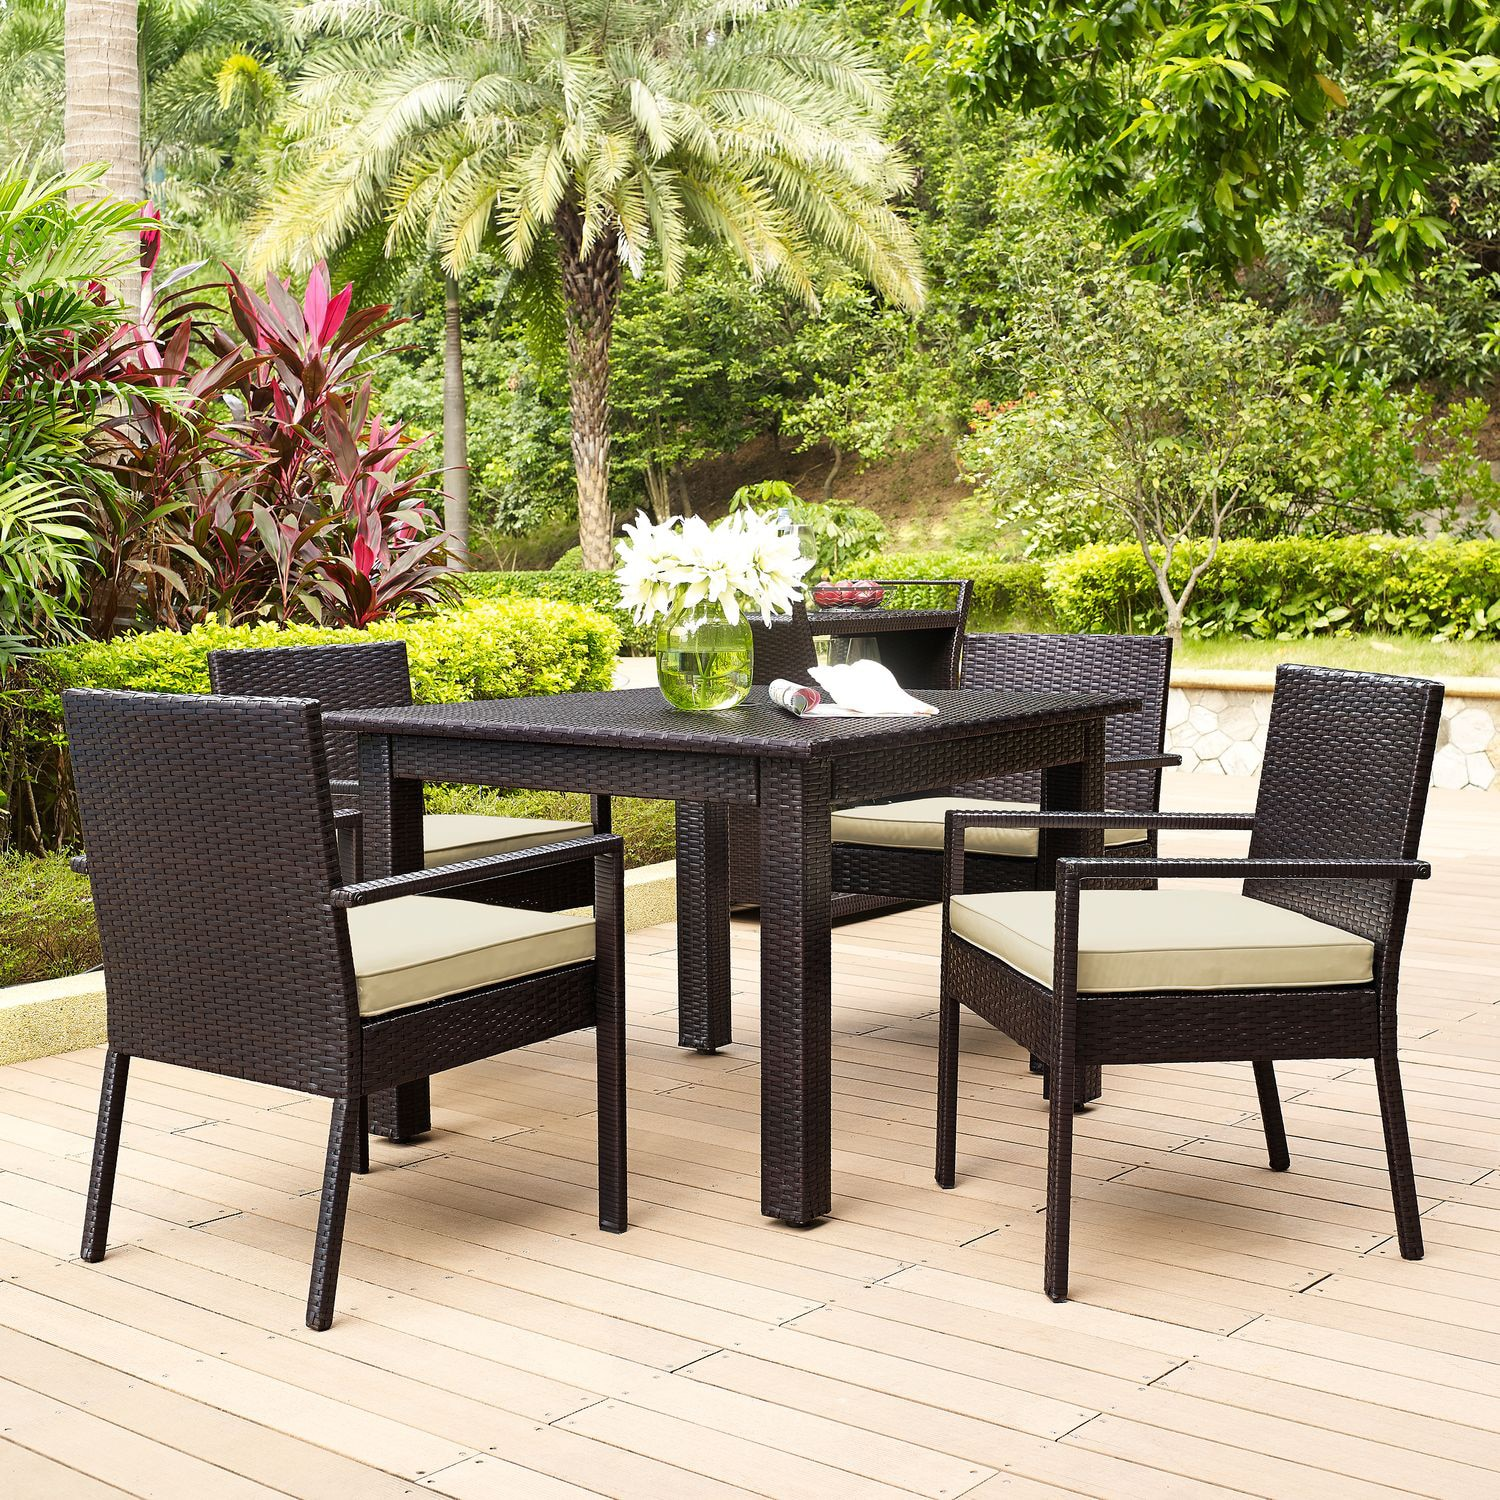 patio vcf value city furniture and mattresses rh valuecityfurniture com city furniture outdoor chairs city furniture outdoor table